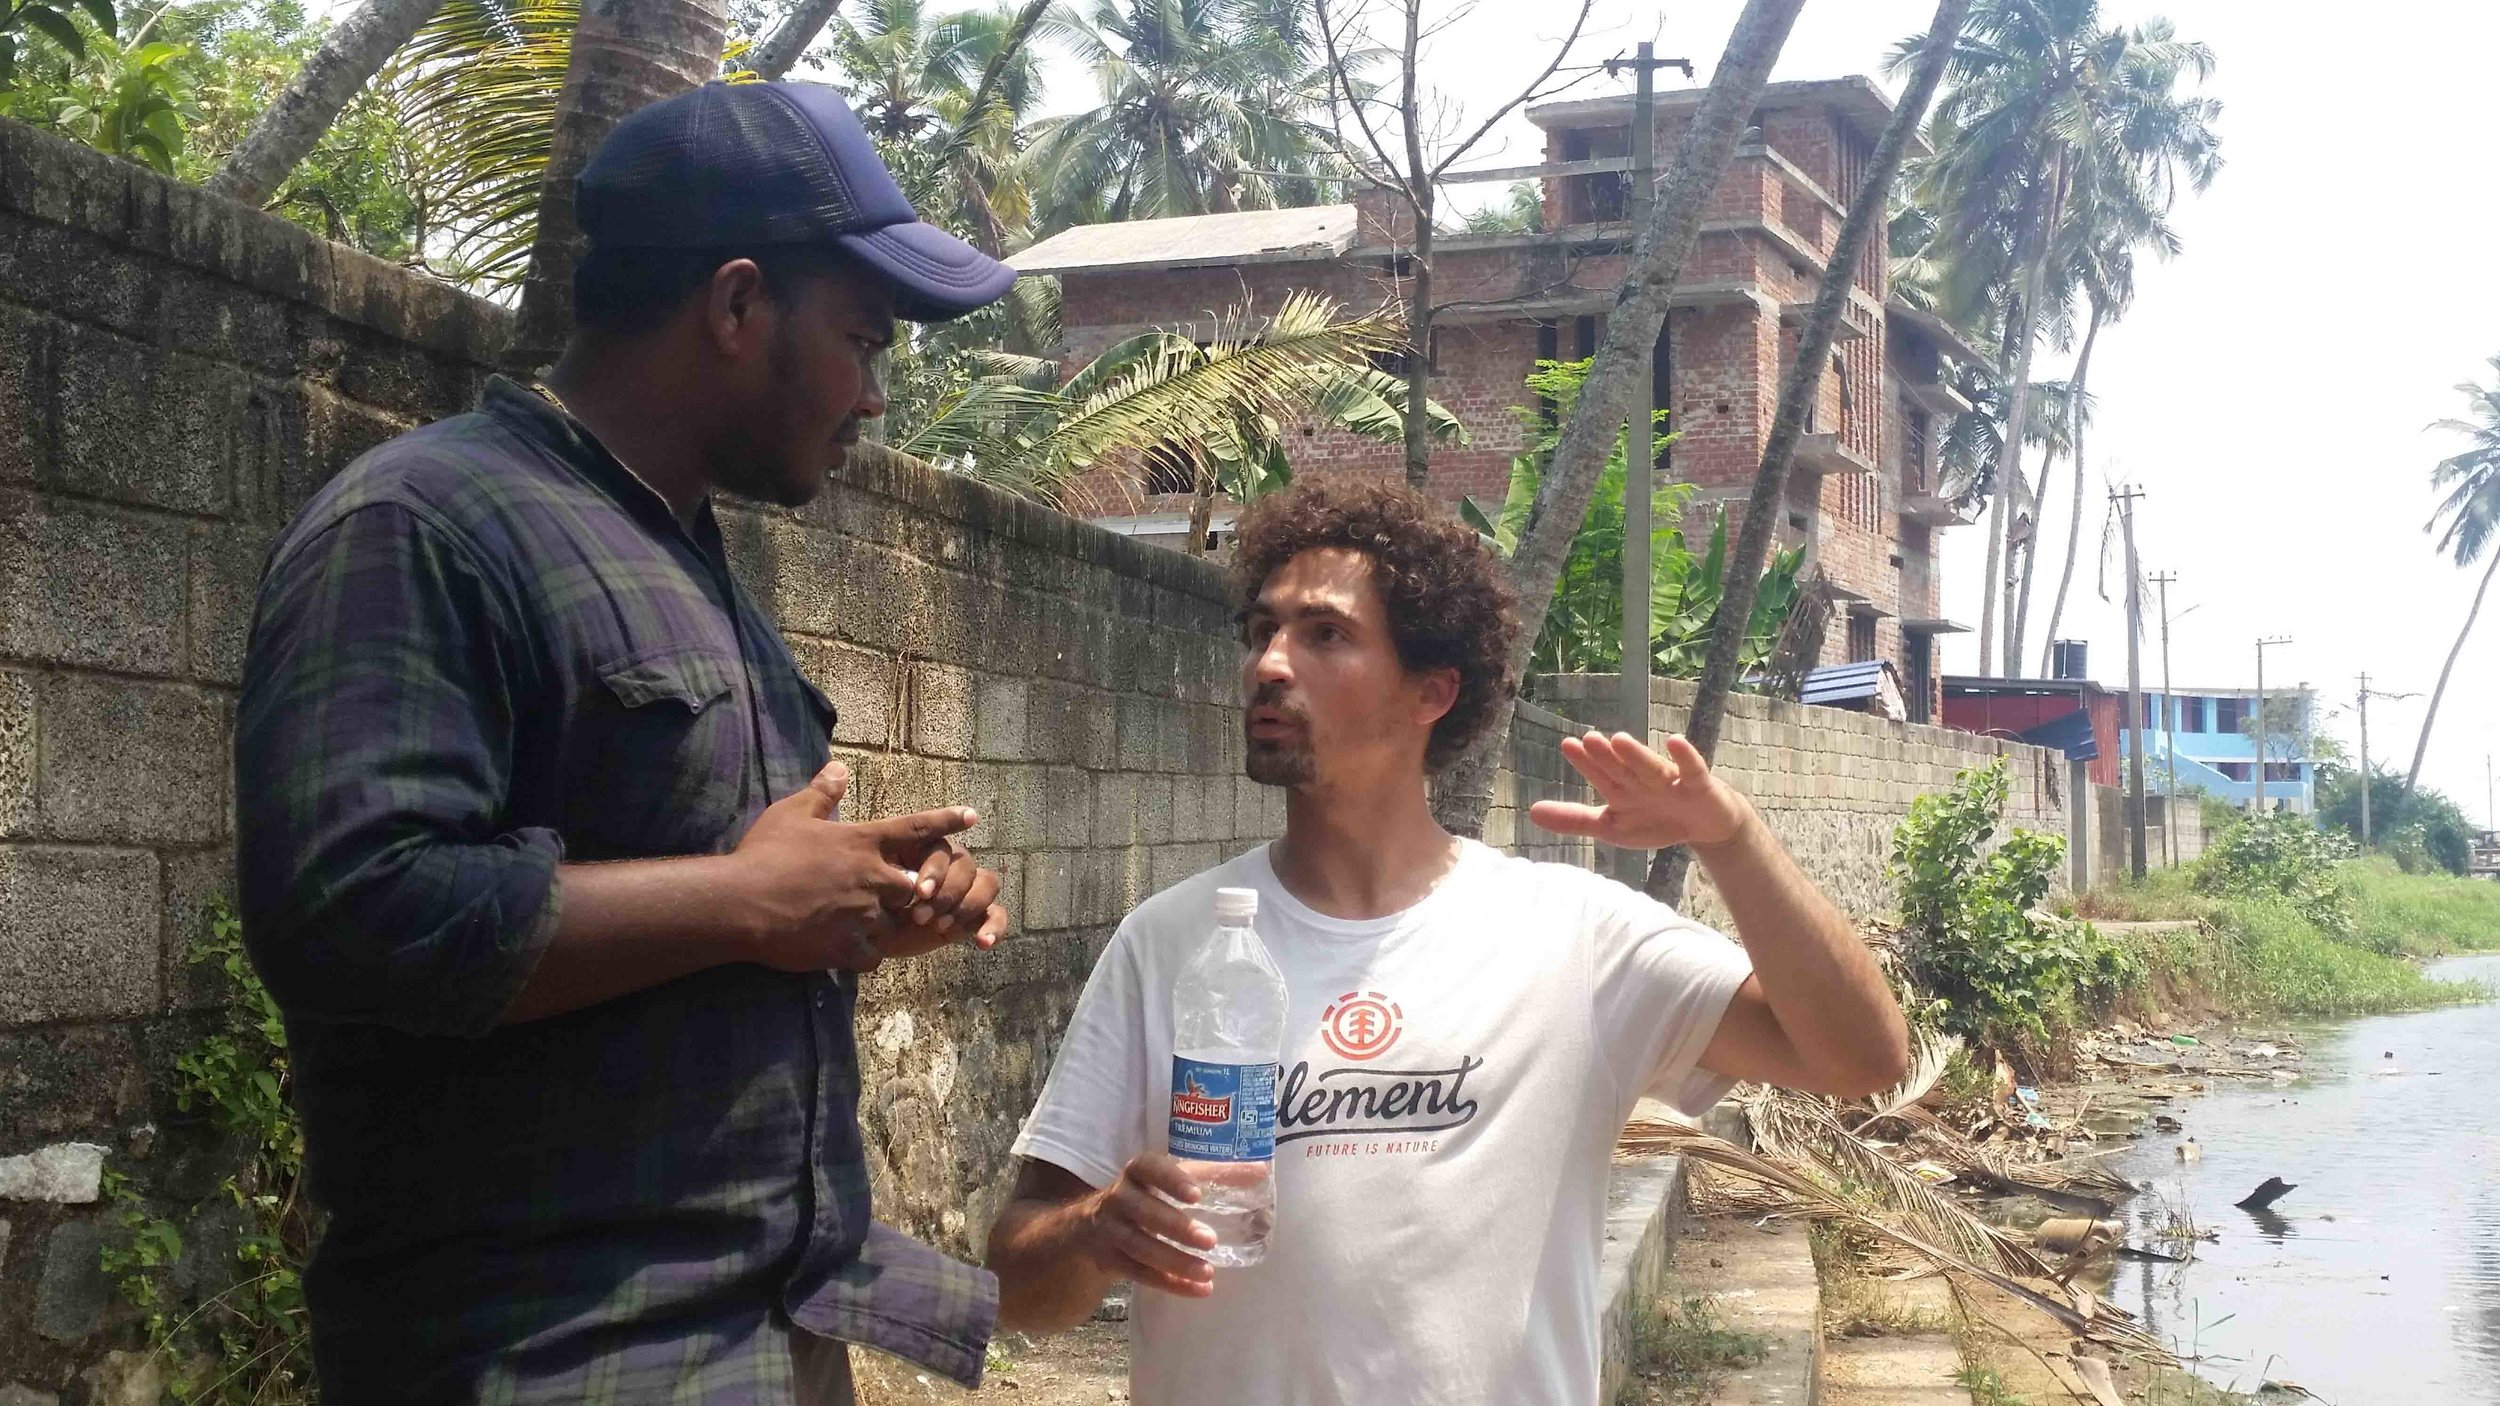 Discussing the situation with our local friend from Vizhinjam, James.